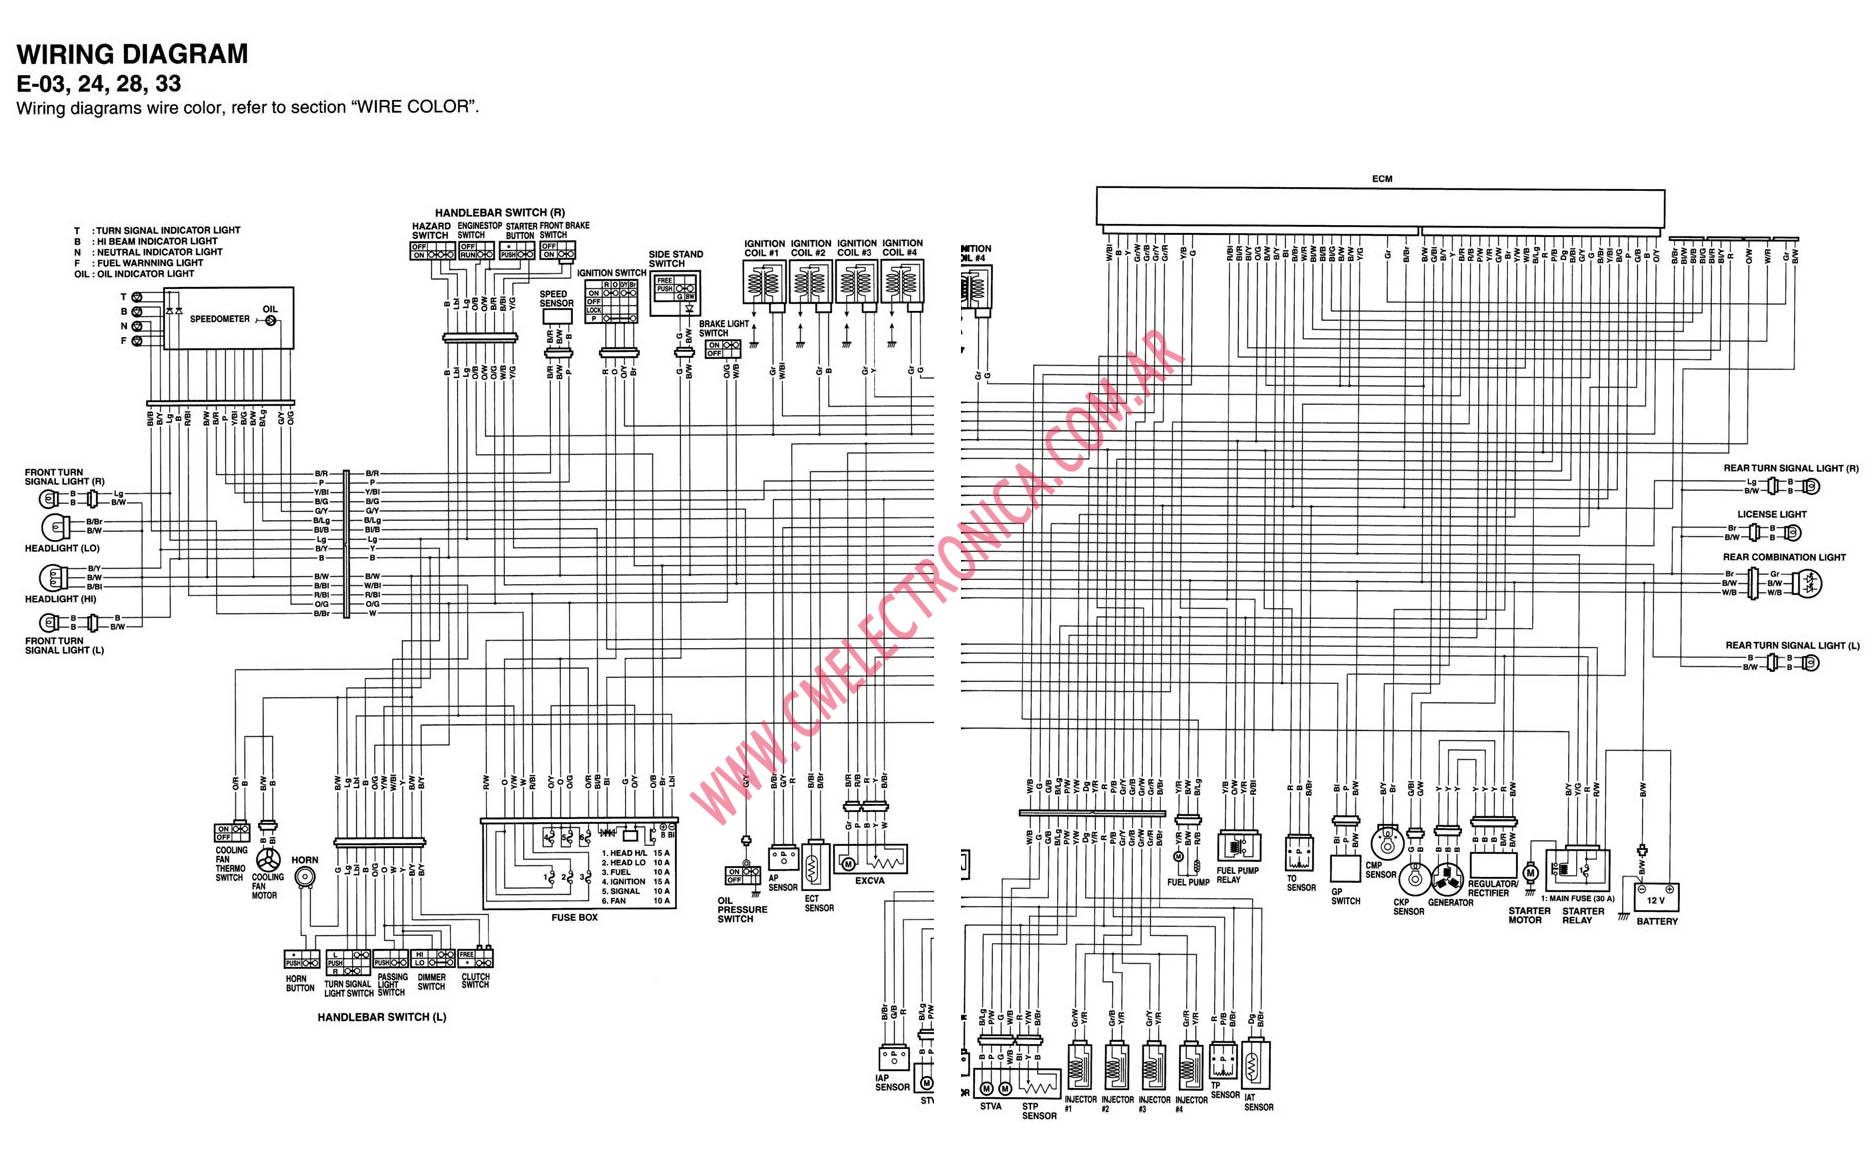 hight resolution of ex500 wiring diagram 03 best wiring libraryex500 wiring diagram 03